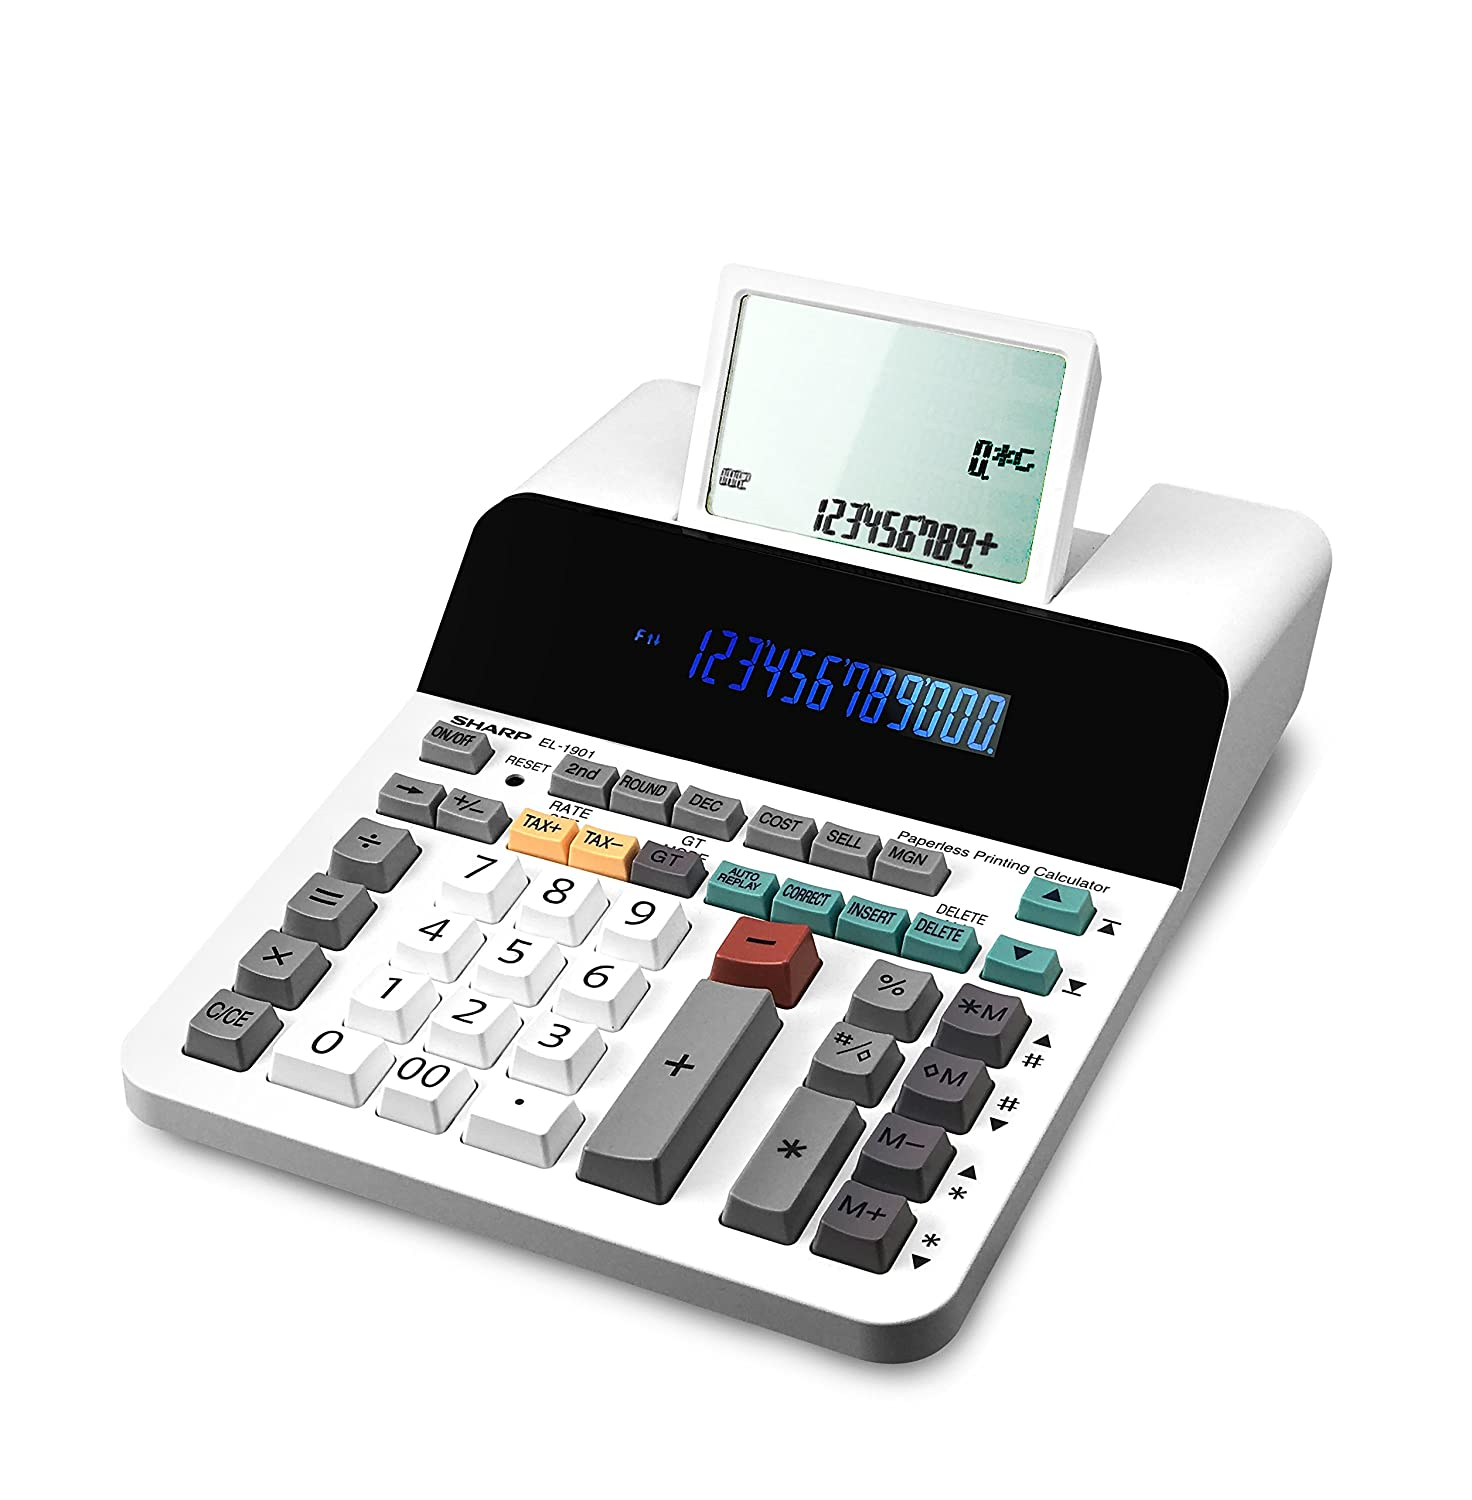 Sharp EL-1901 Paperless Printing Calculator with Check and Correct, 12-Digit LCD Primary Display, Functions the Same as a Printing Calculator/Adding Machine with Scrolling LCD Display Instead of Paper